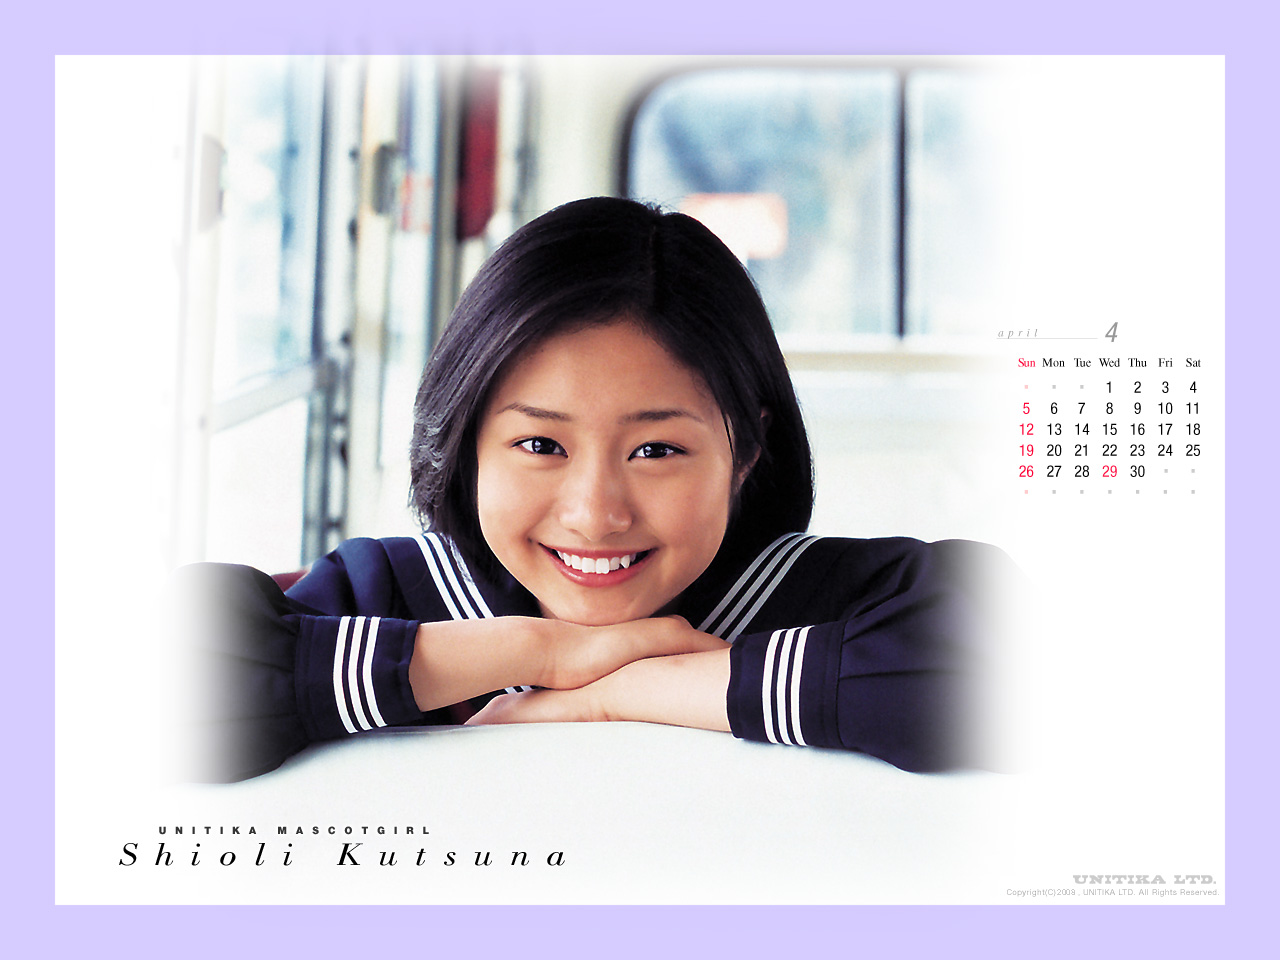 Malayalam Mathrubhoomi Calendar 2015 | Search Results | Calendar 2015